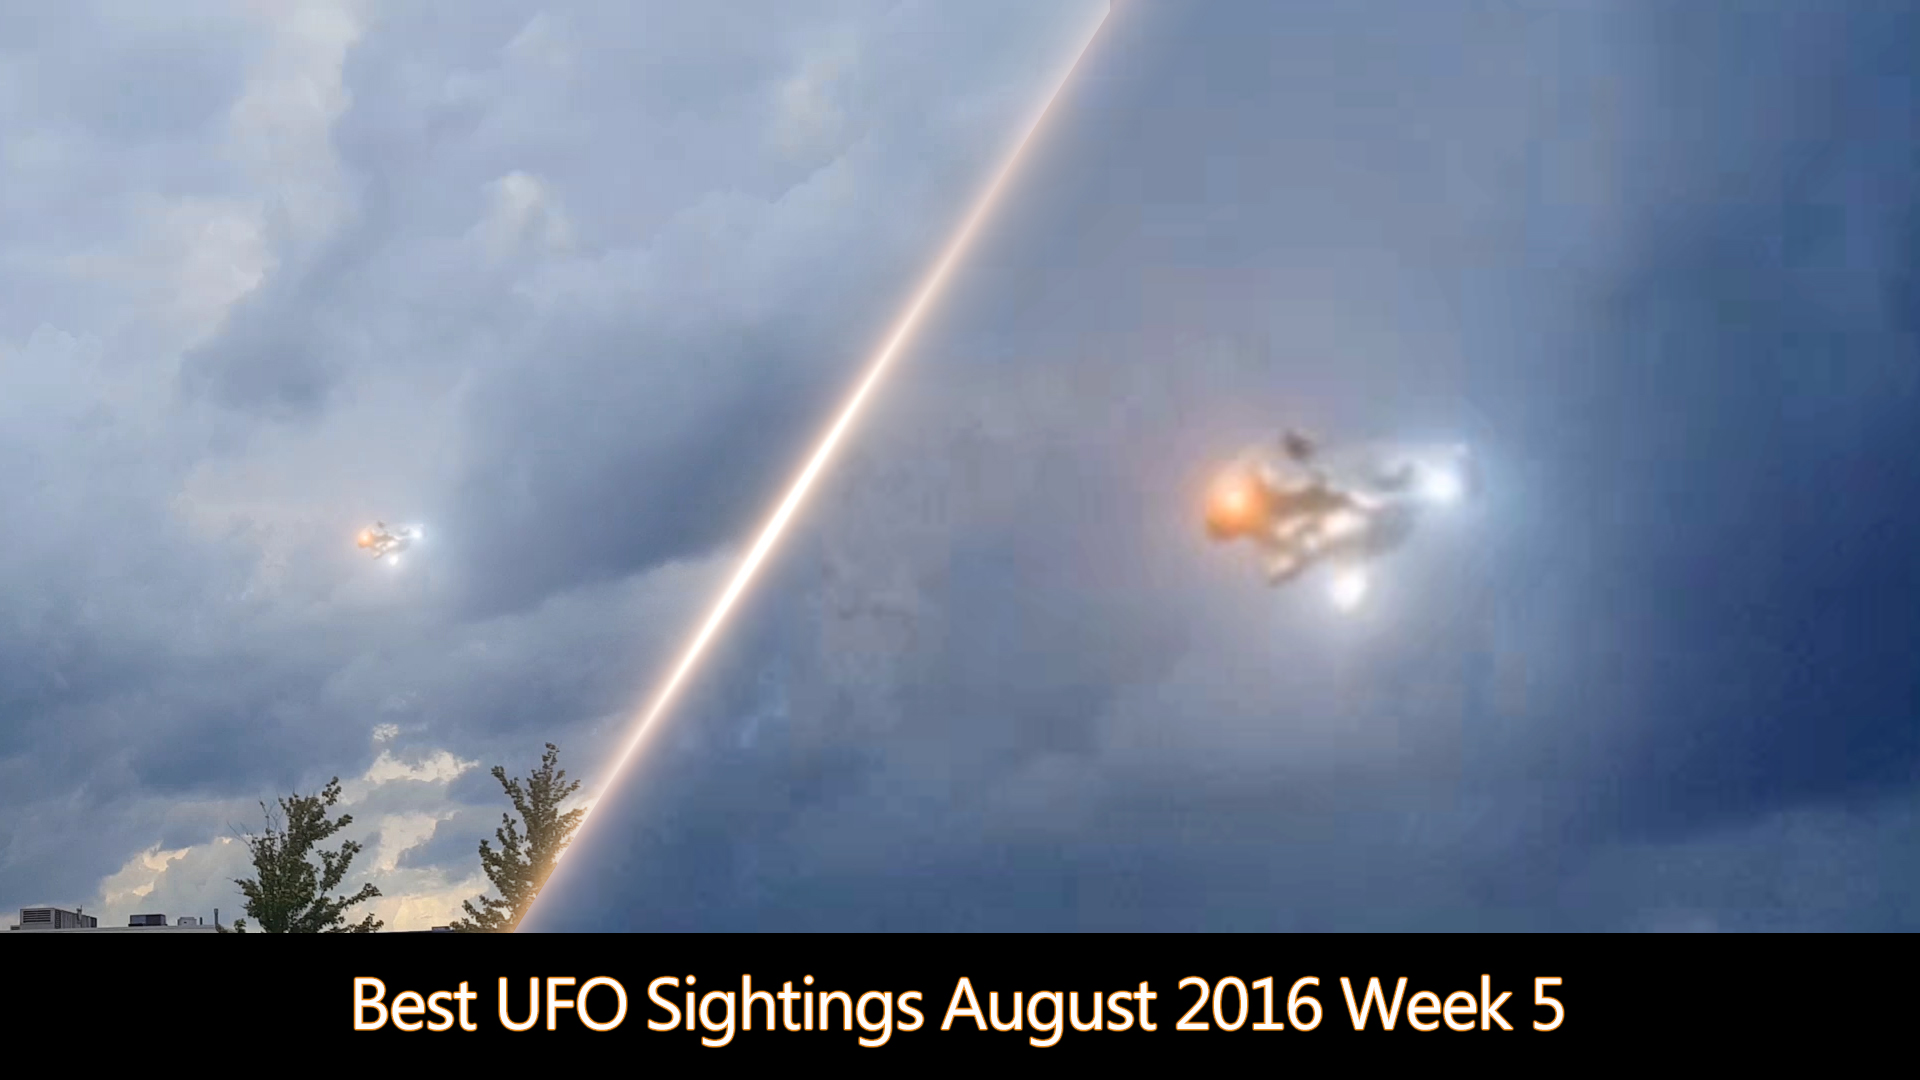 Best UFO Sightings August 2016 Week 5 | iufosightings